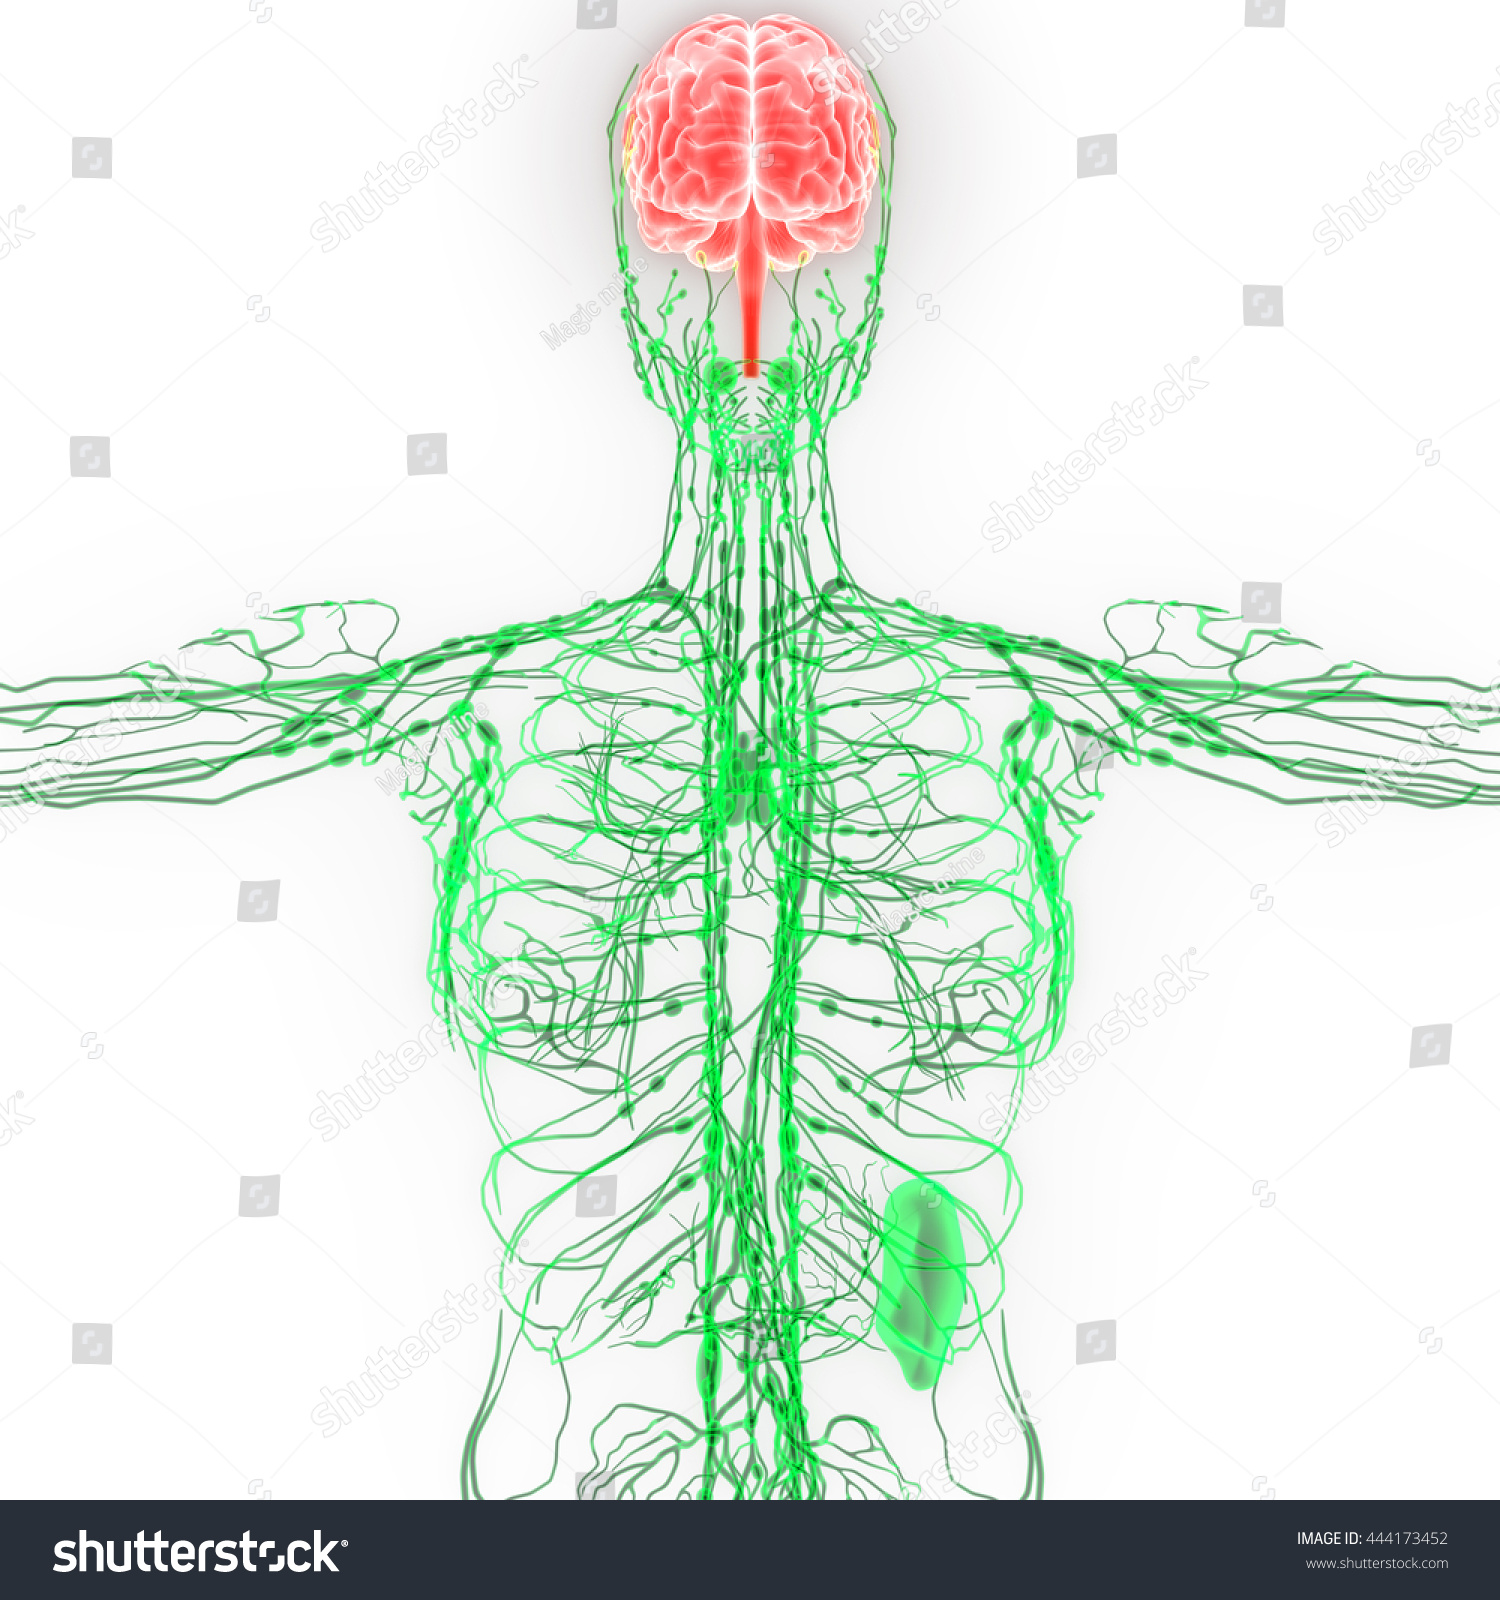 Human Brain Nerves Lymph Nodes Anatomy Stock Illustration 444173452 ...